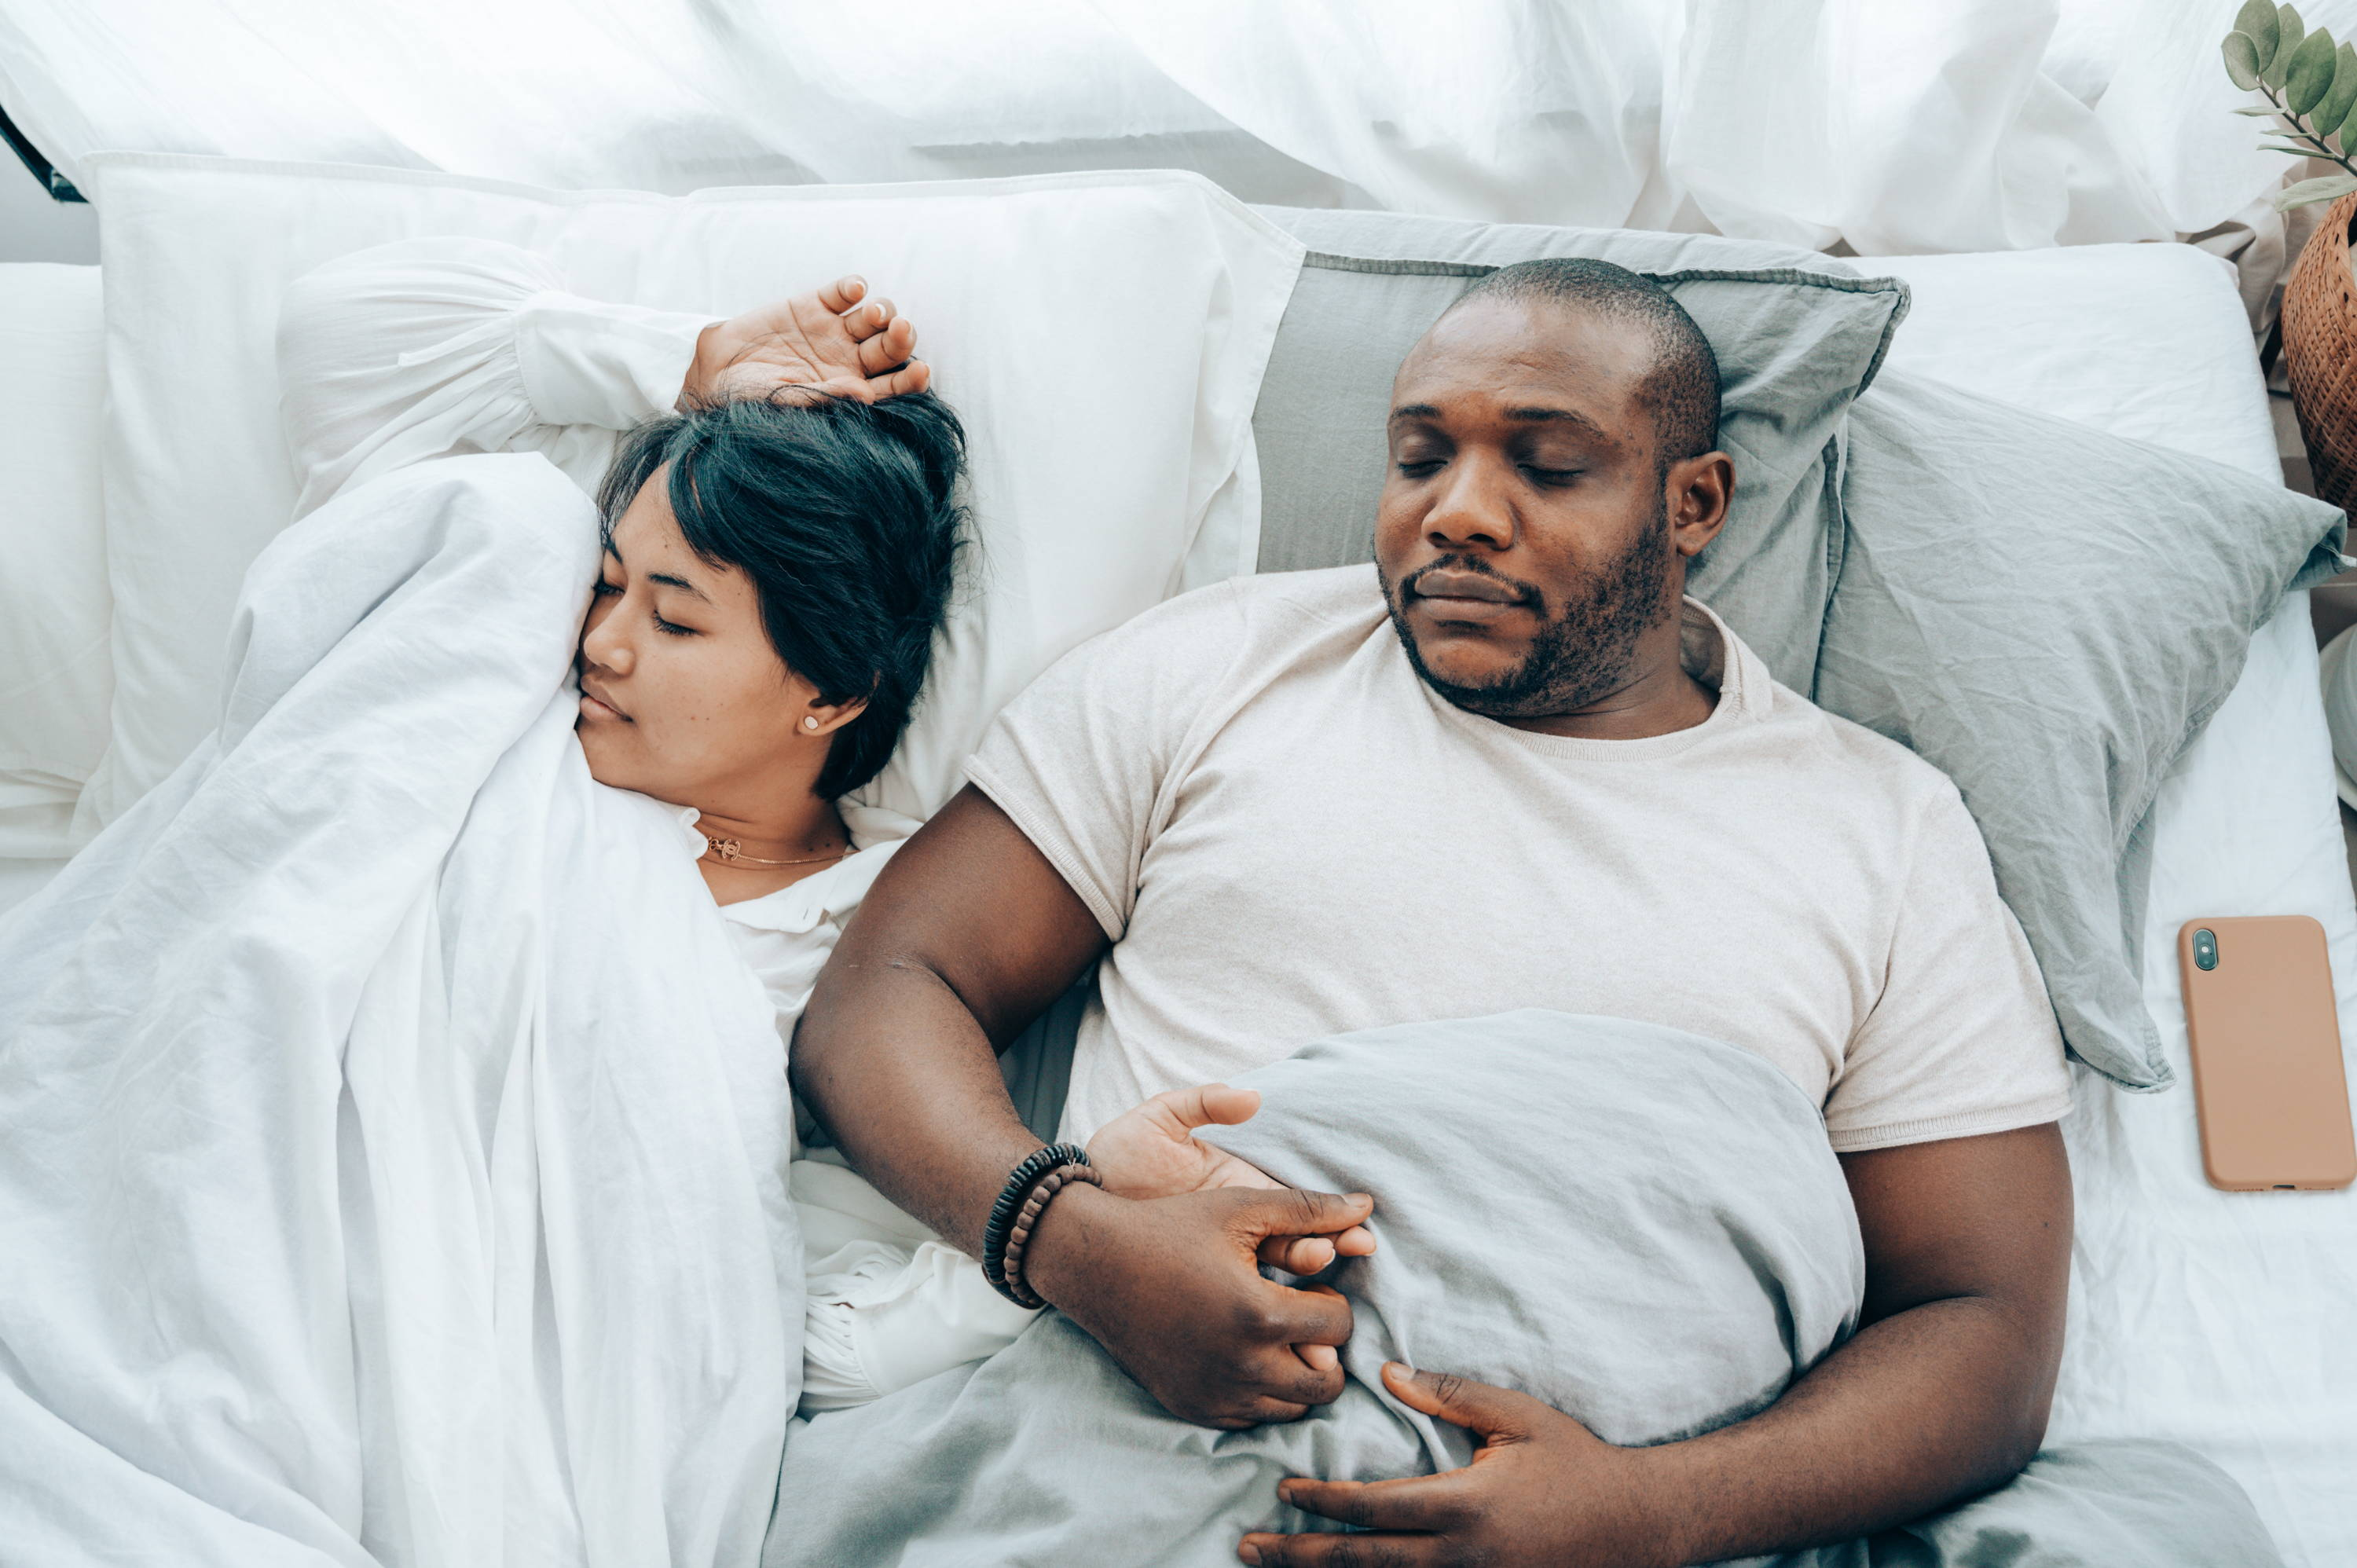 16. Young multiethnic spouses sleeping in bed holding hands - Photo by Ketut Subiyanto from Pexels